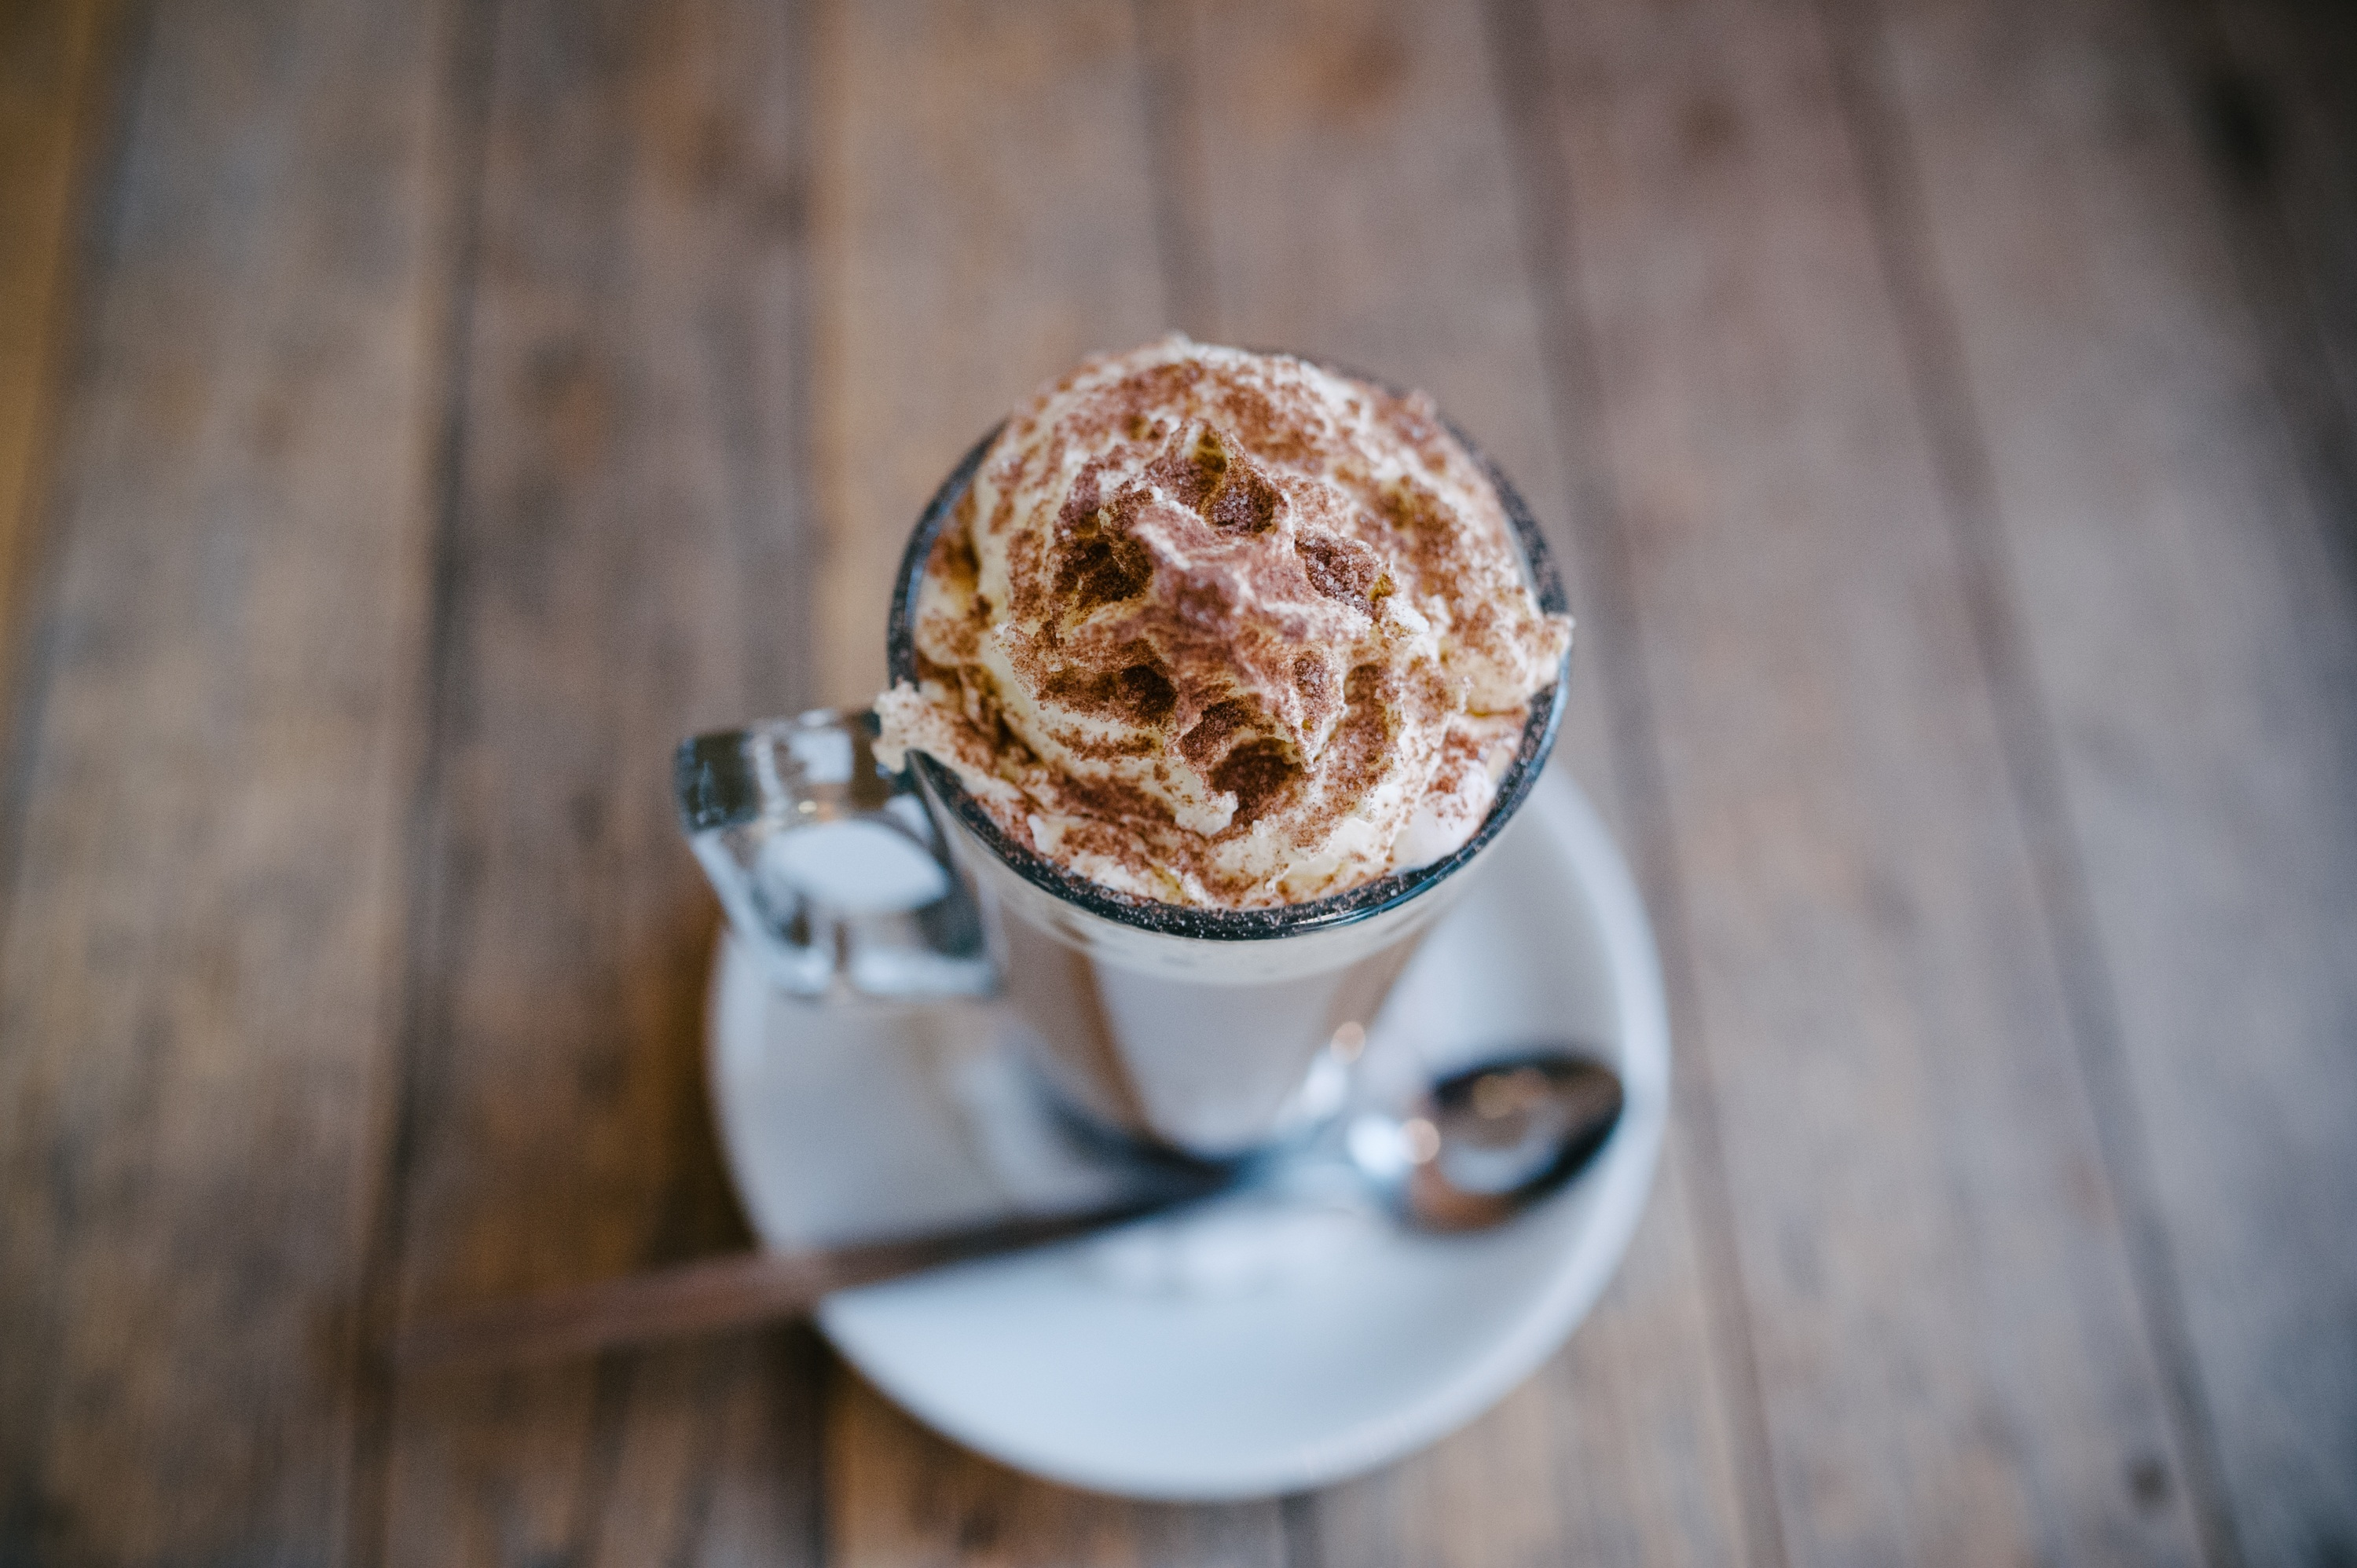 53444 download wallpaper Food, Coffee, Cream, Drink, Beverage, Cinnamon screensavers and pictures for free